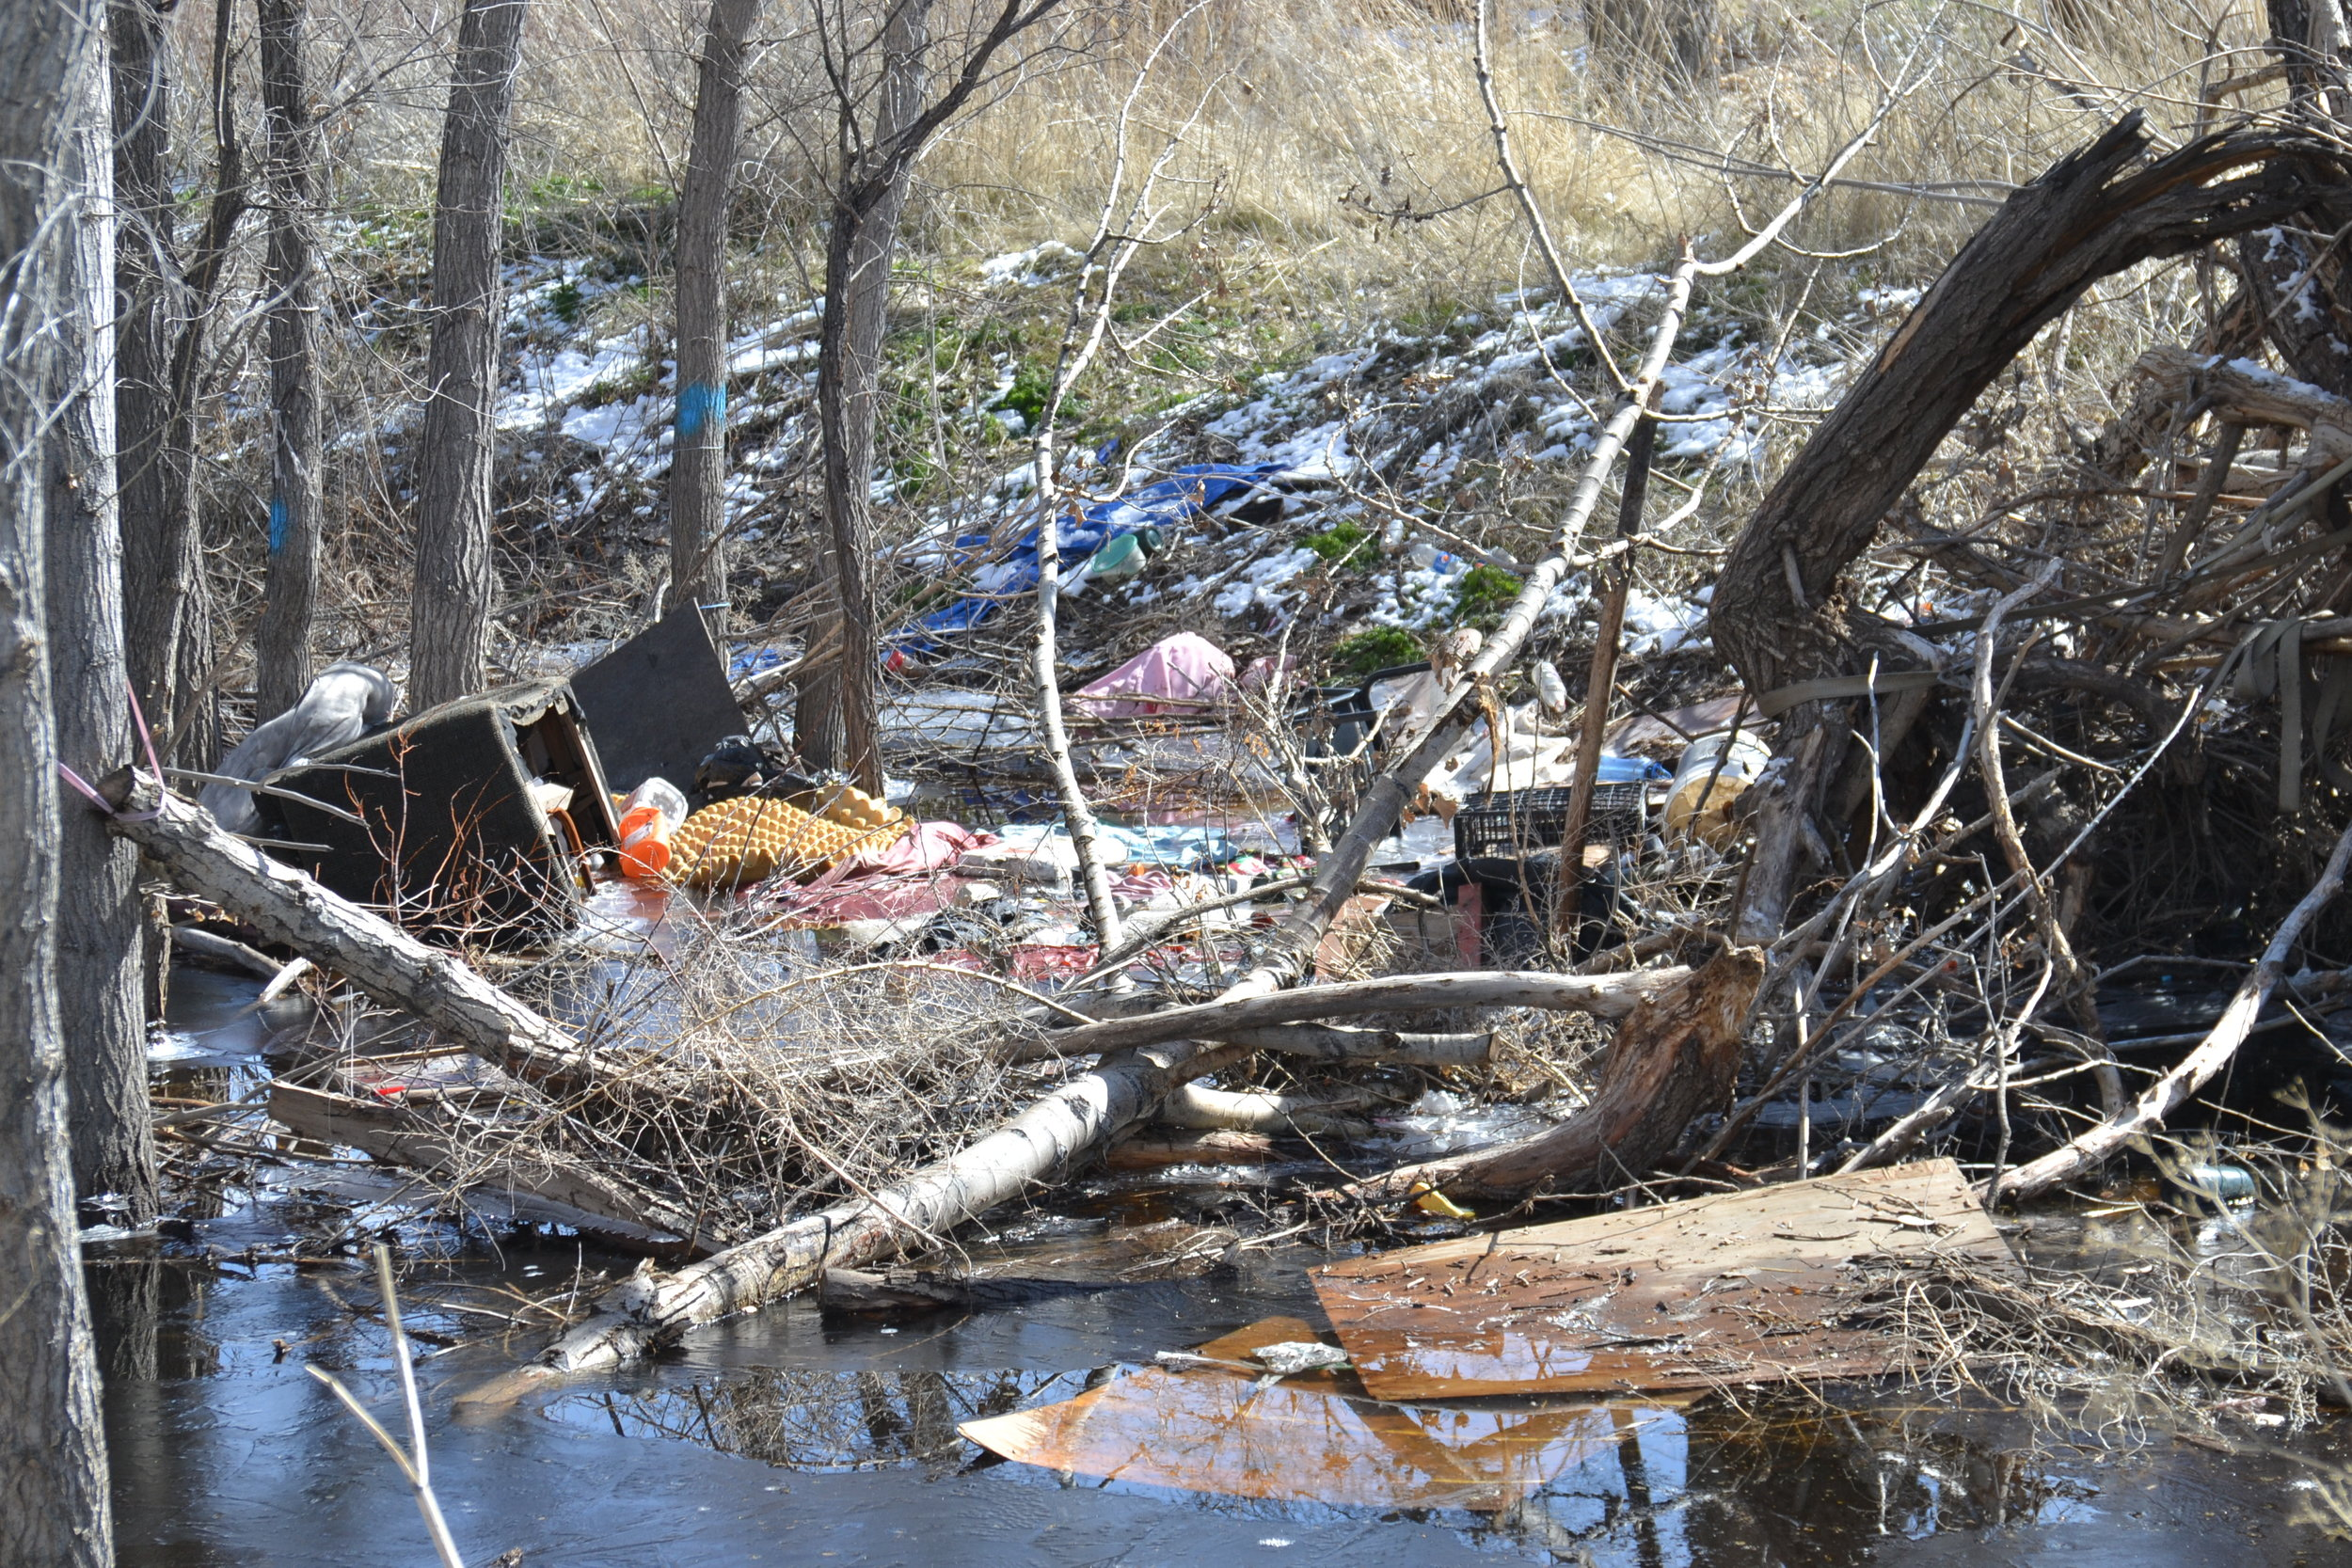 Melting snow, heavy rain, rising waters and new campers who came through have created more trash than usual. This is right by the current sleeping spot for the River Rats. Photo by Jacob Jacoby for Our Town Reno